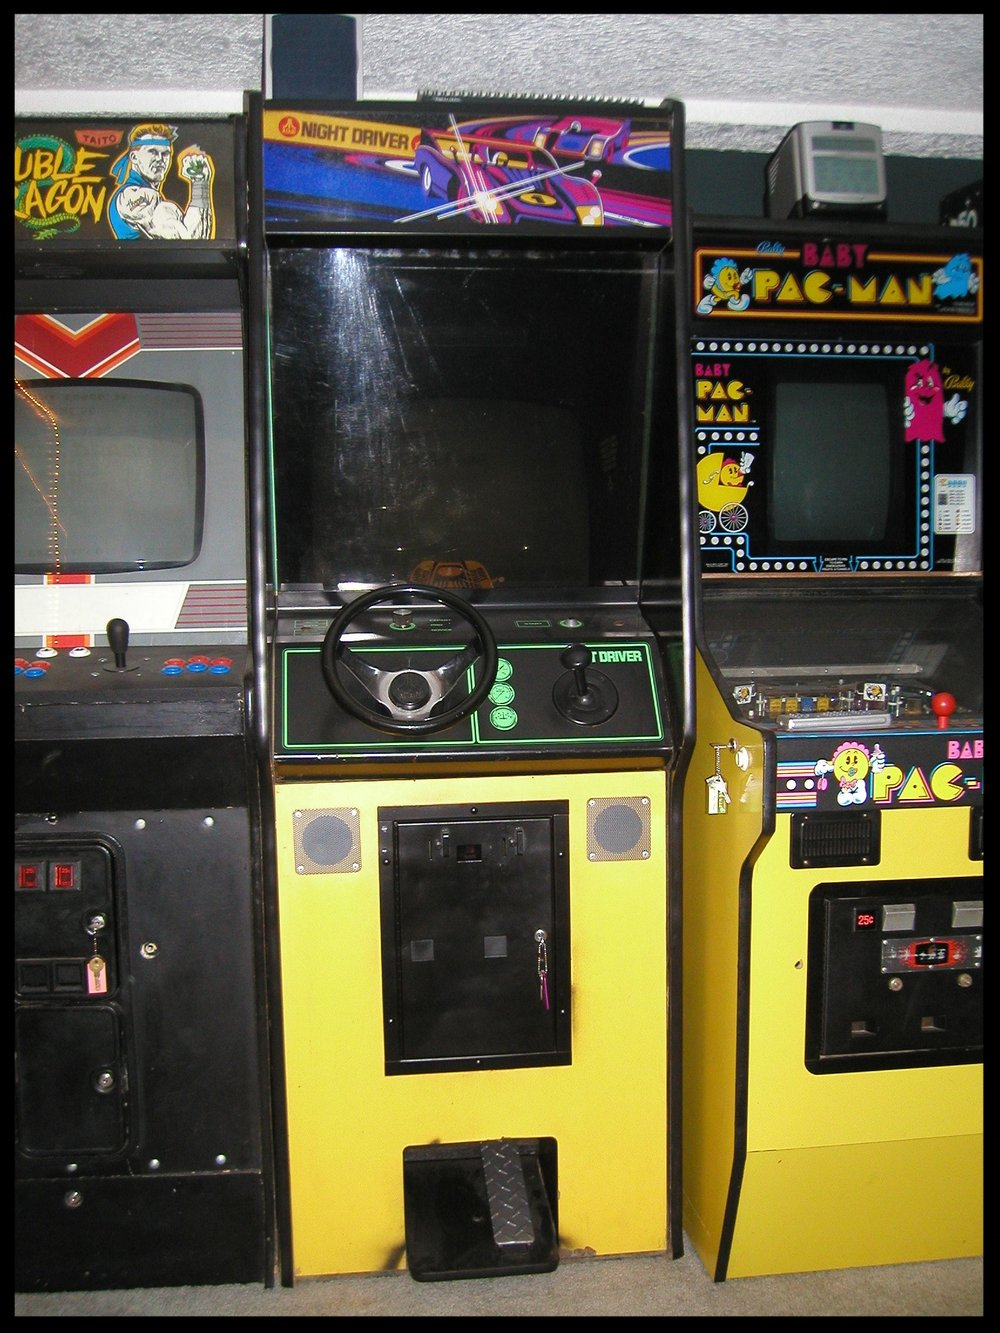 The very clean Night Driver was snuggled in between the Double Dragon and Baby Pac-Man.